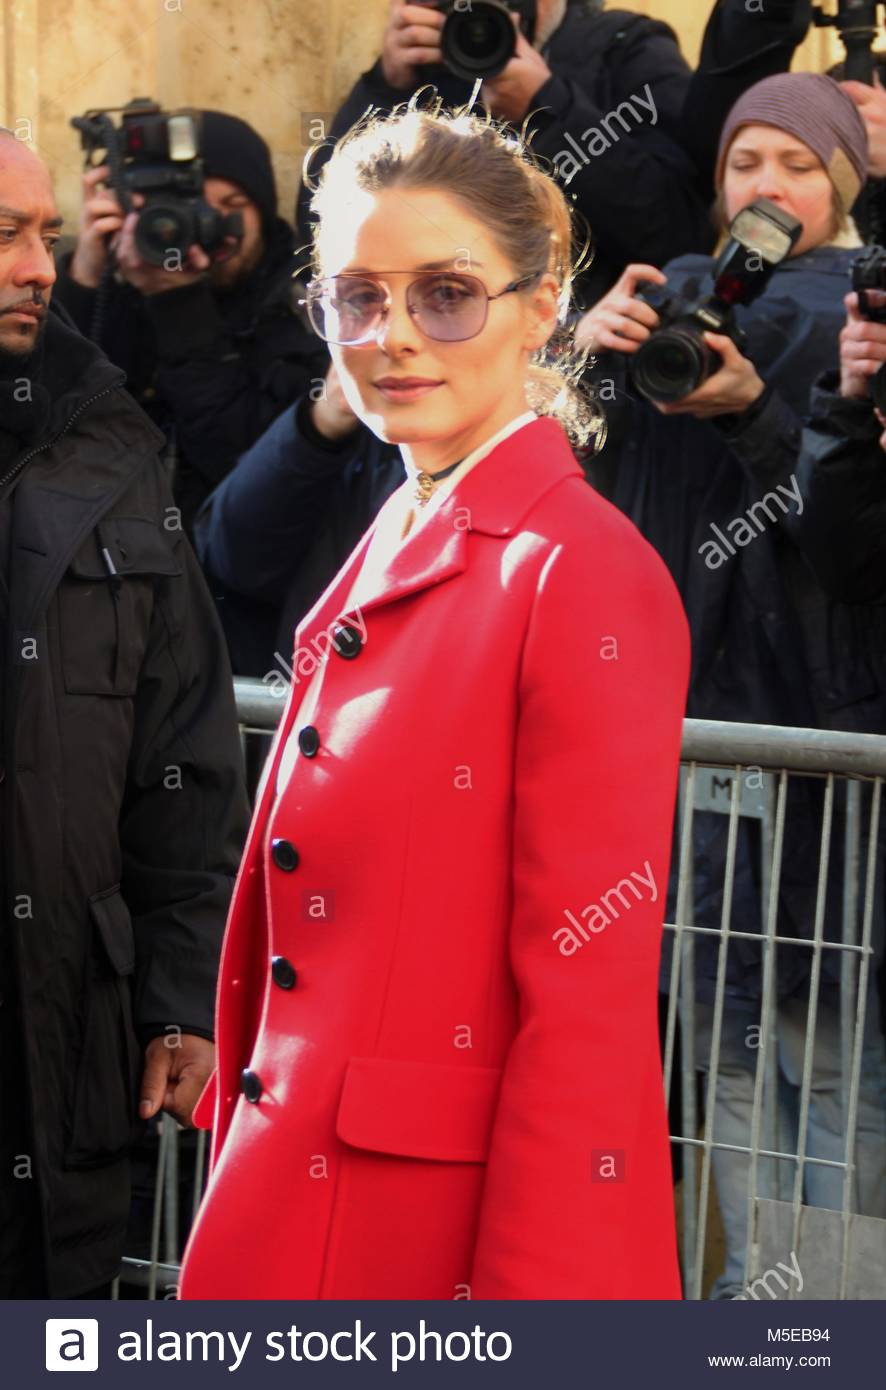 Paris Fashion Week - Christian Dior Haute Couture Spring Summer 2018 show - Arrivals  Featuring: Olivia Palermo - Stock Image